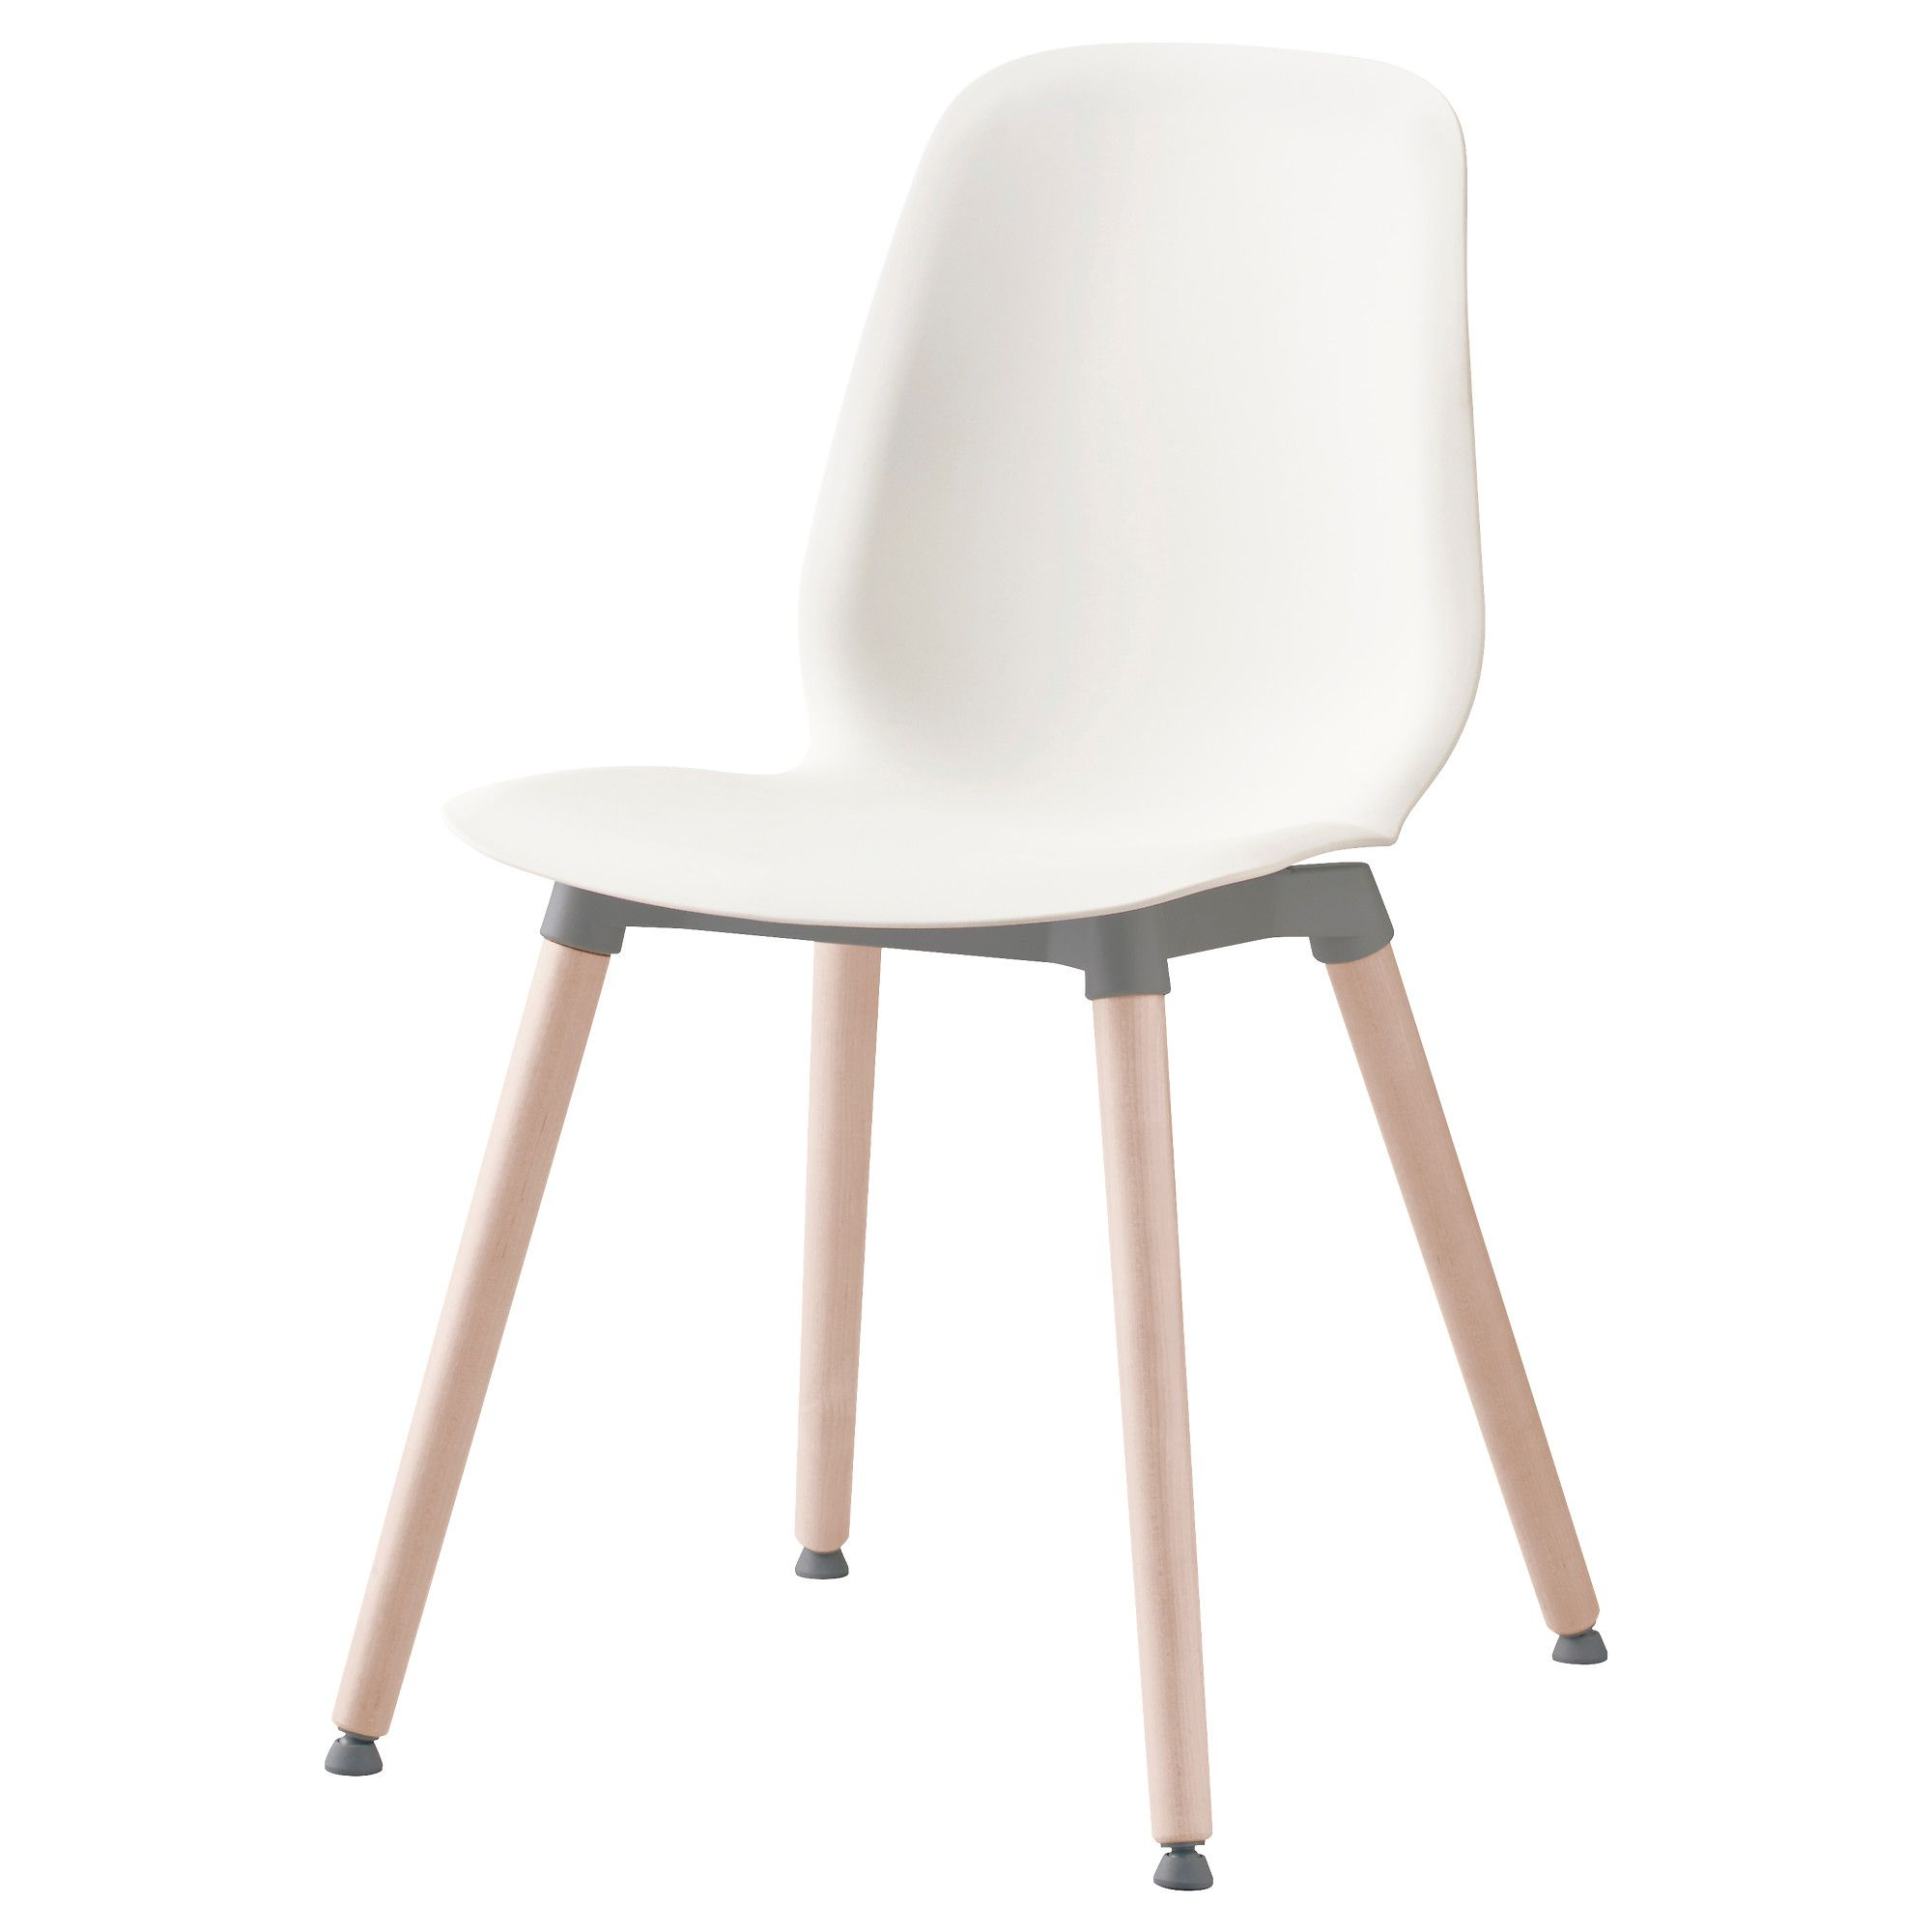 leifarne chair white/ernfrid birch | 167 lounge | pinterest | sedie